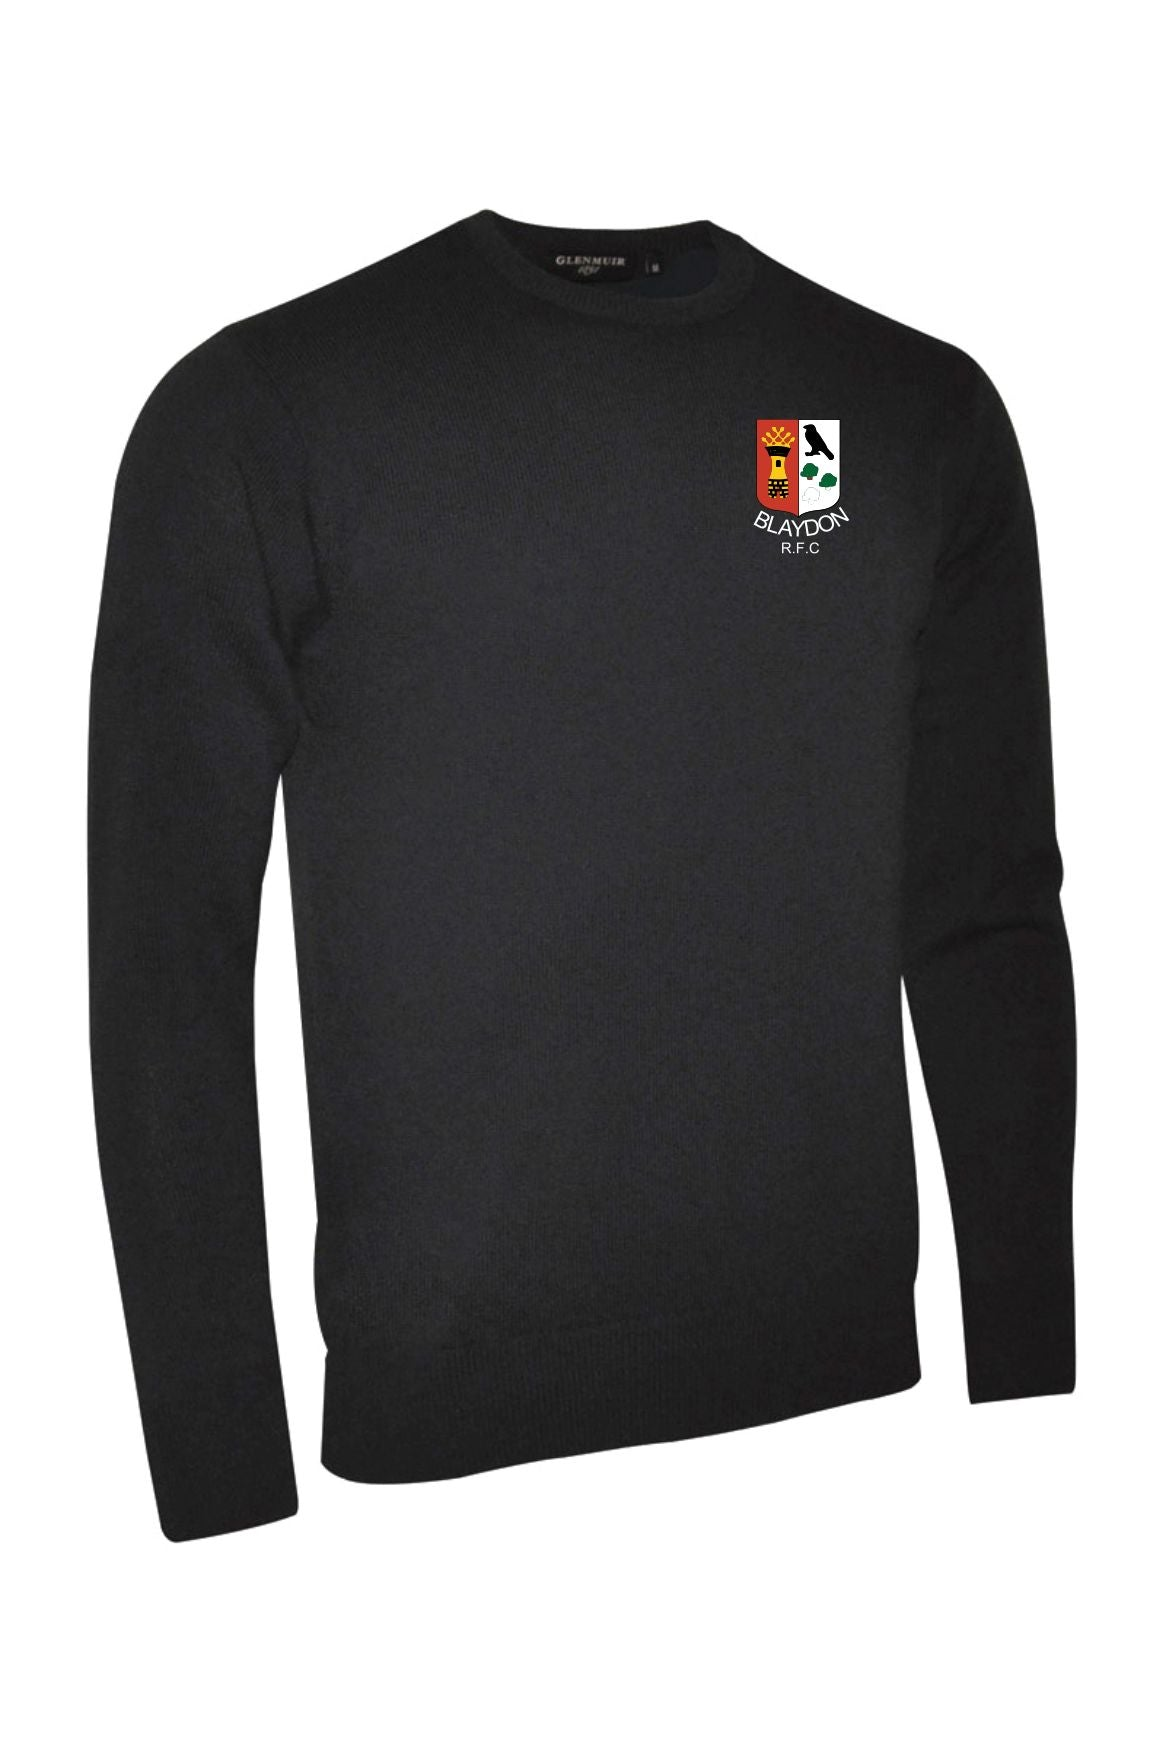 "Blaydon RFC ""Members"" Crew neck lambswool"